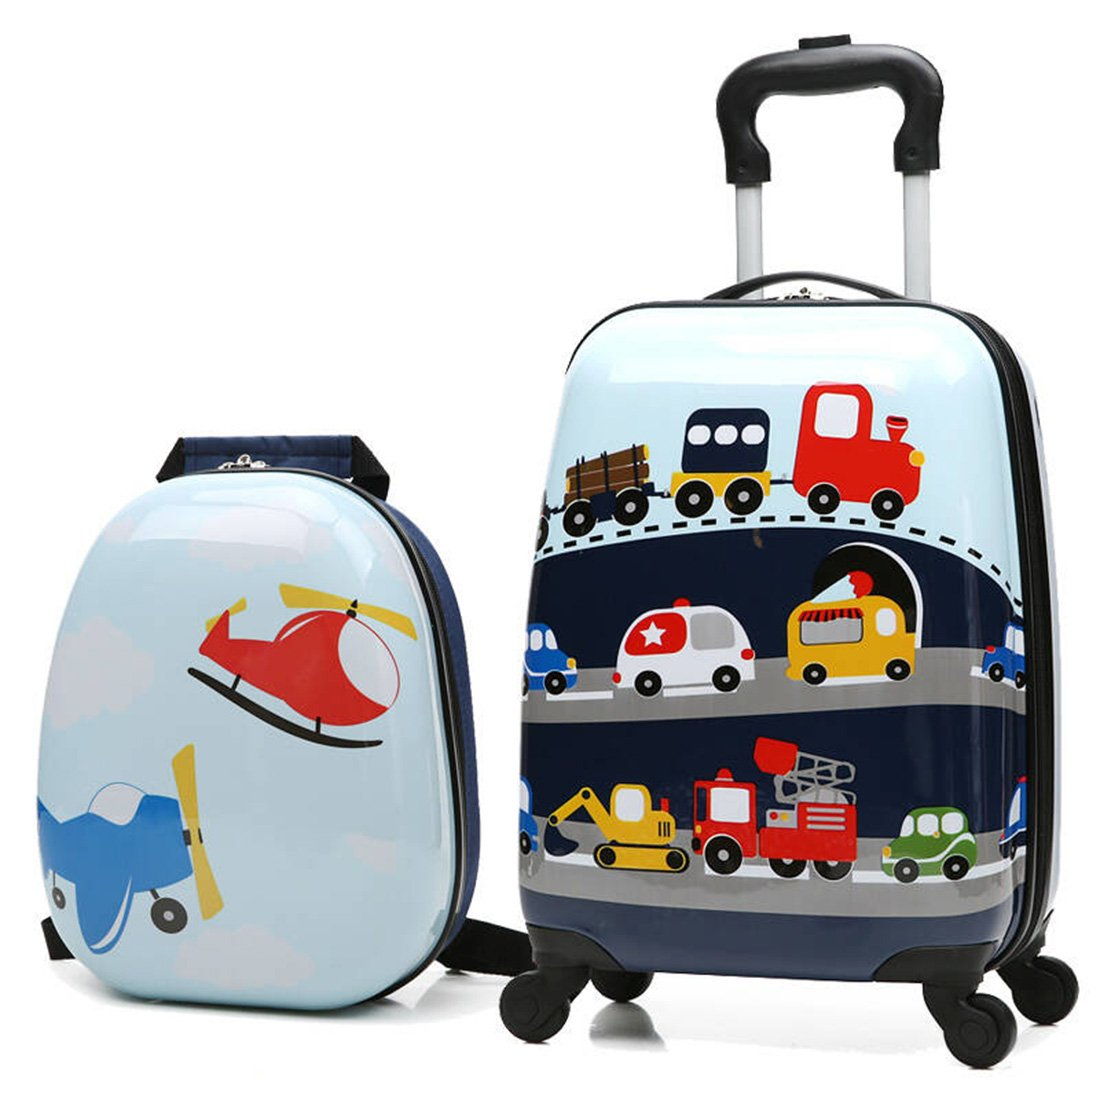 MOREFUN Travel Suitcase Kids 2 Pc Wheels Luggage Set 18'' Carry on Luggage and 13'' Backpack Car by Morefun Trading (Image #2)